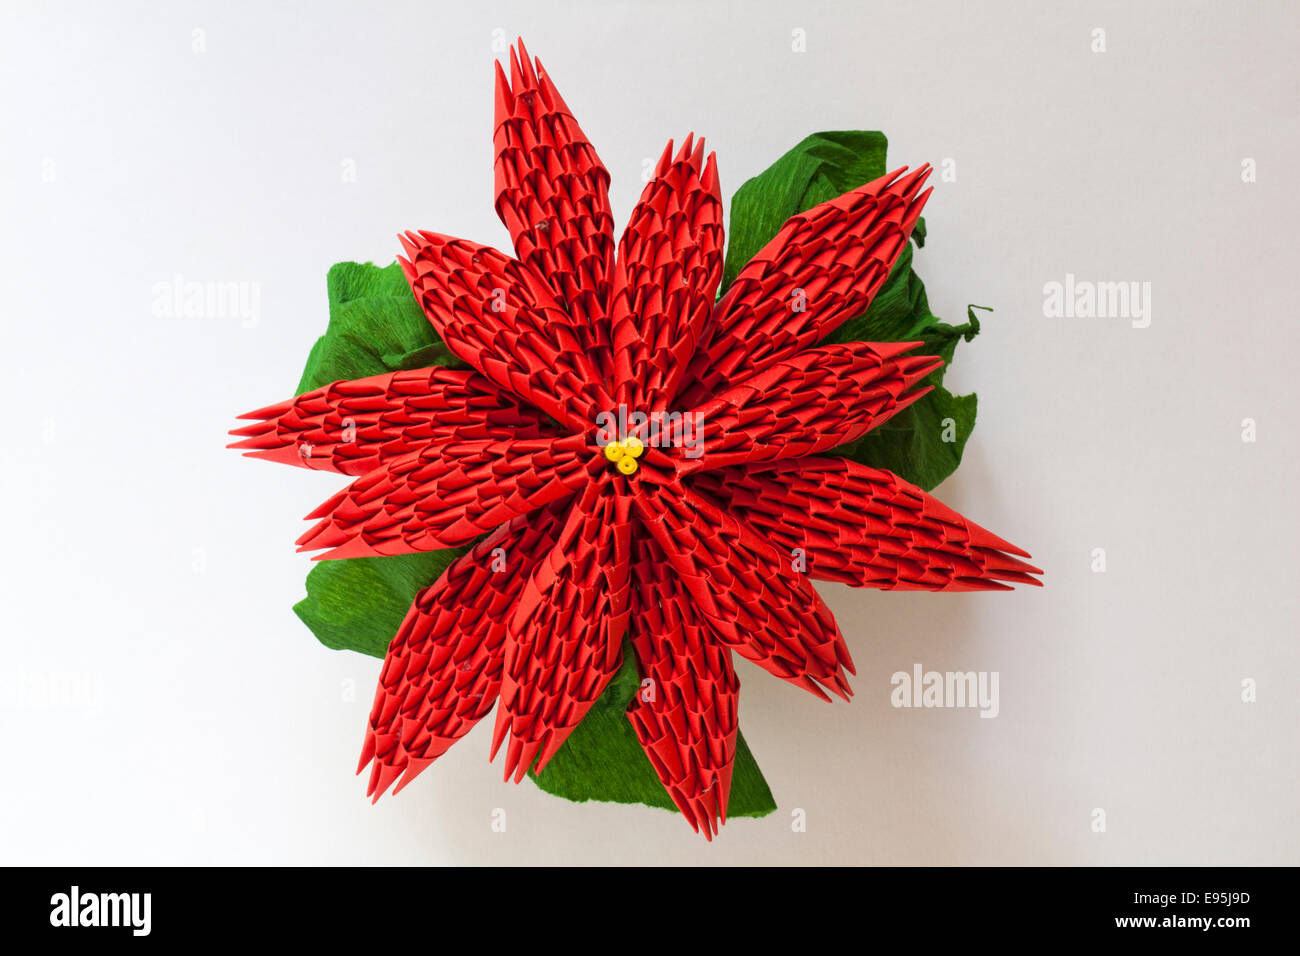 Red Flower Origami White Isolated Stock Photos Red Flower Origami